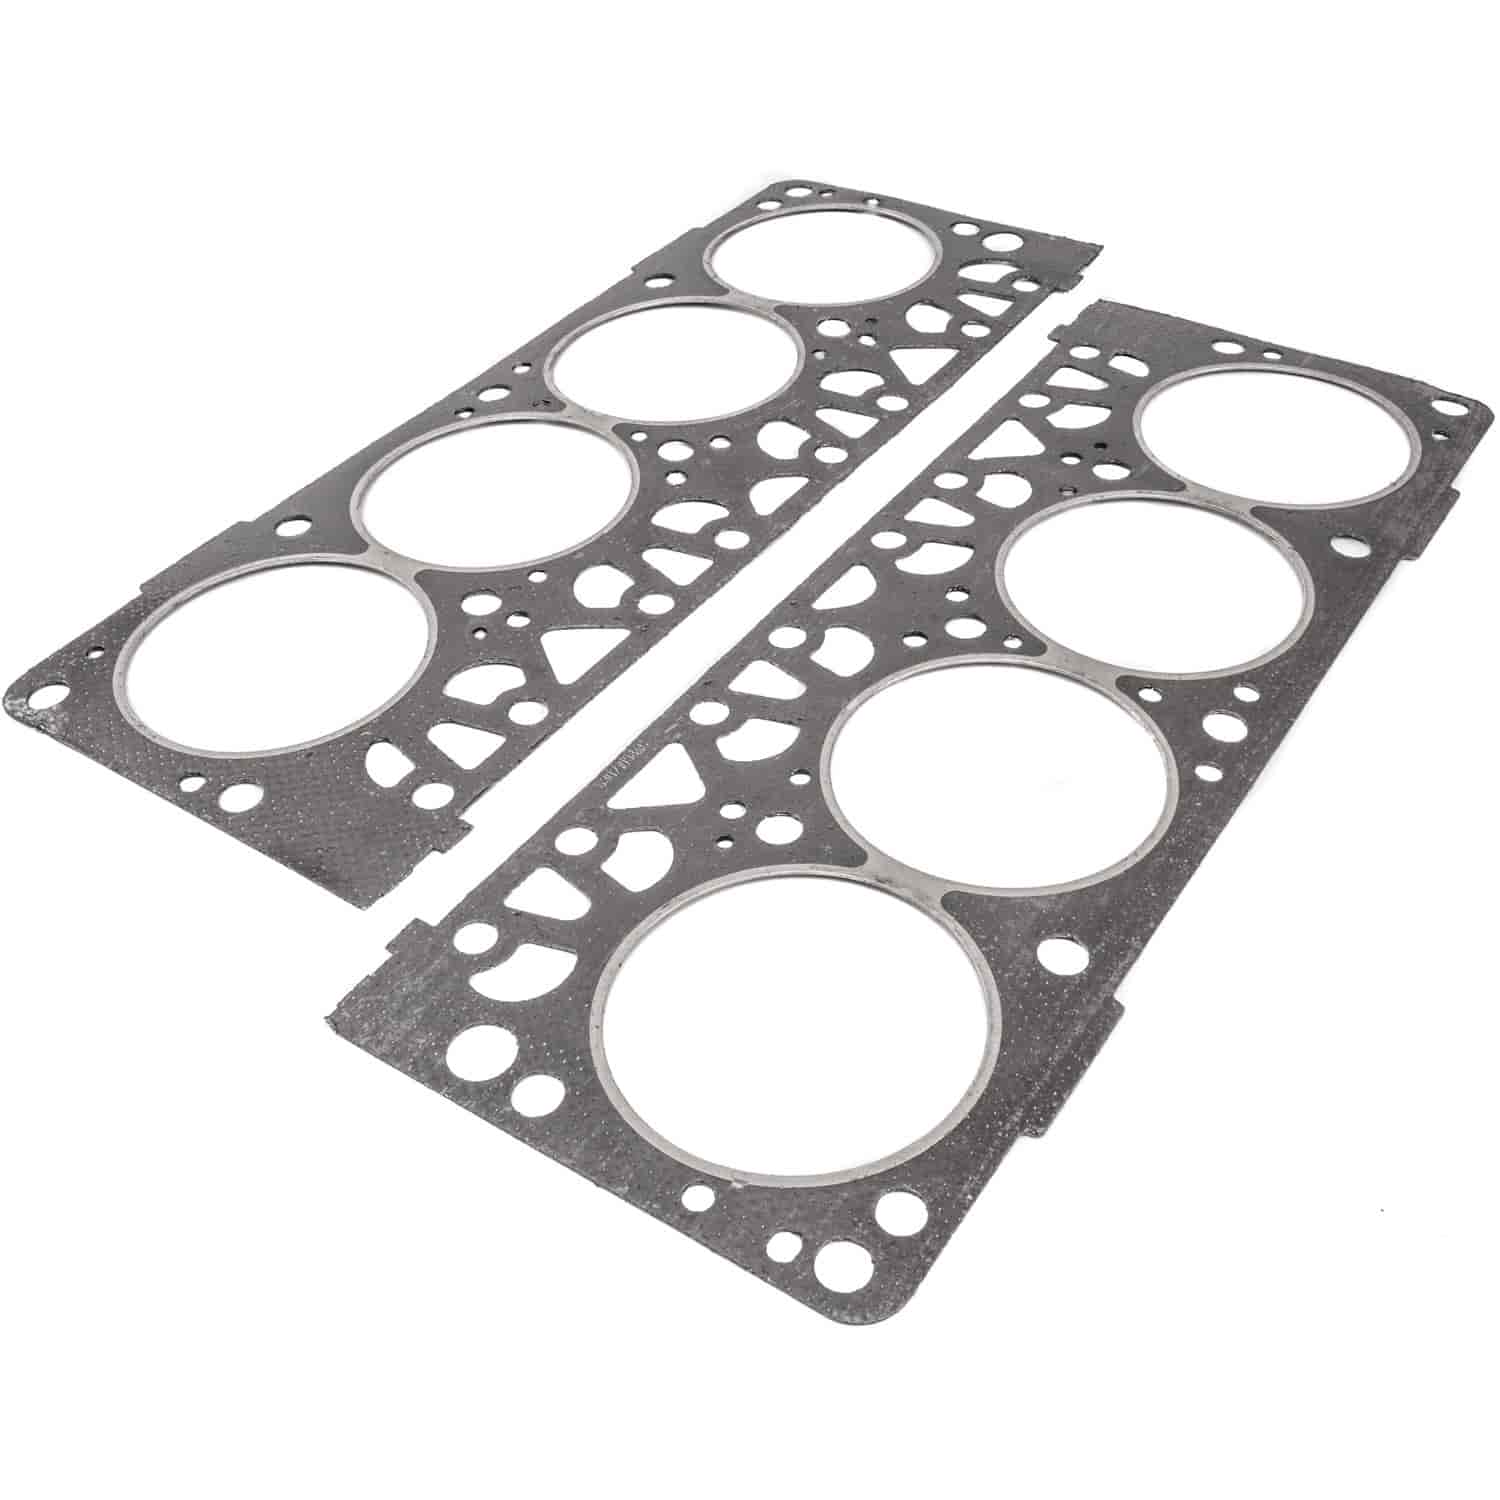 Mopar Performance P4876048 - Mopar Performance Head Gaskets